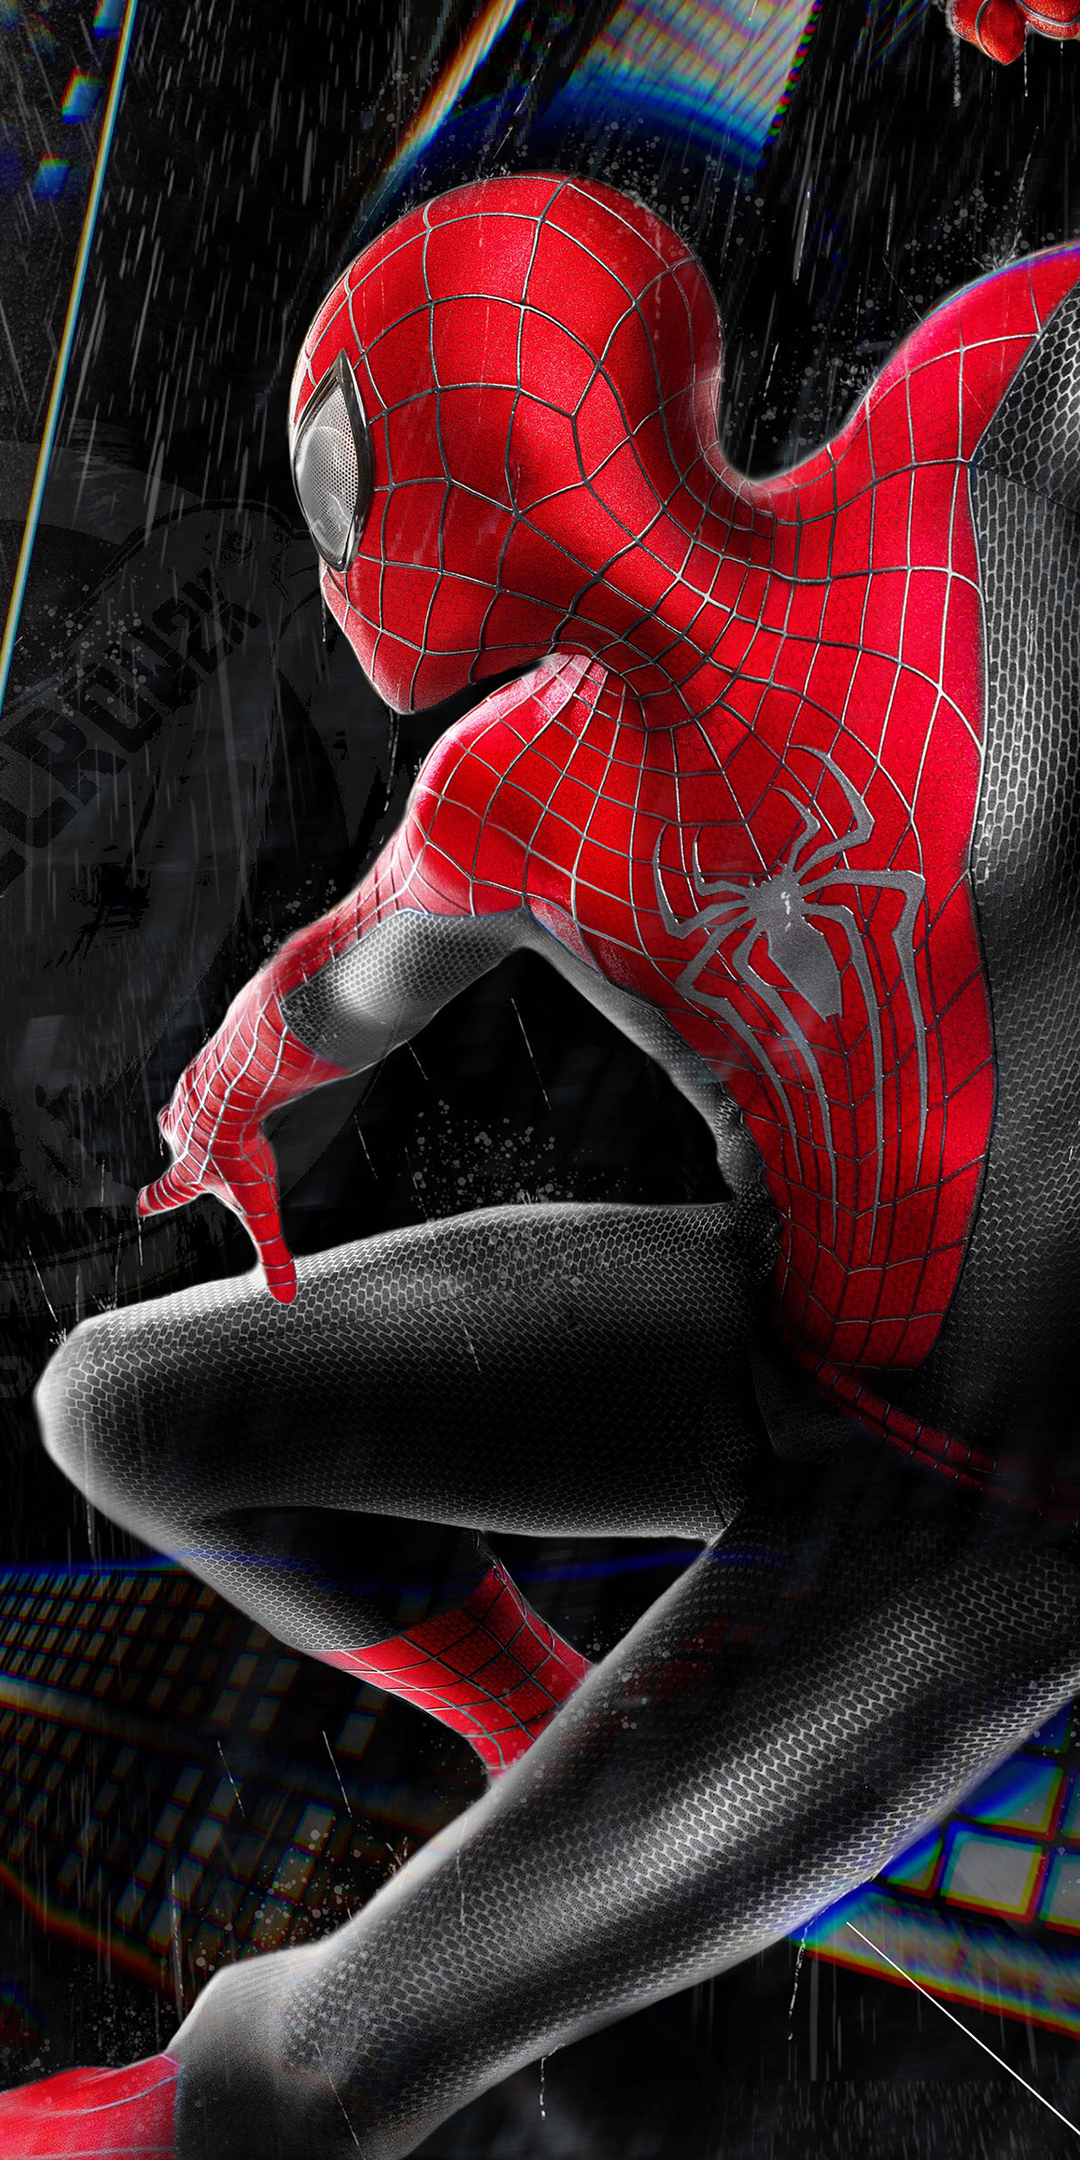 the-amazing-spider-man-3-embrace-the-darkness-4k-u1.jpg